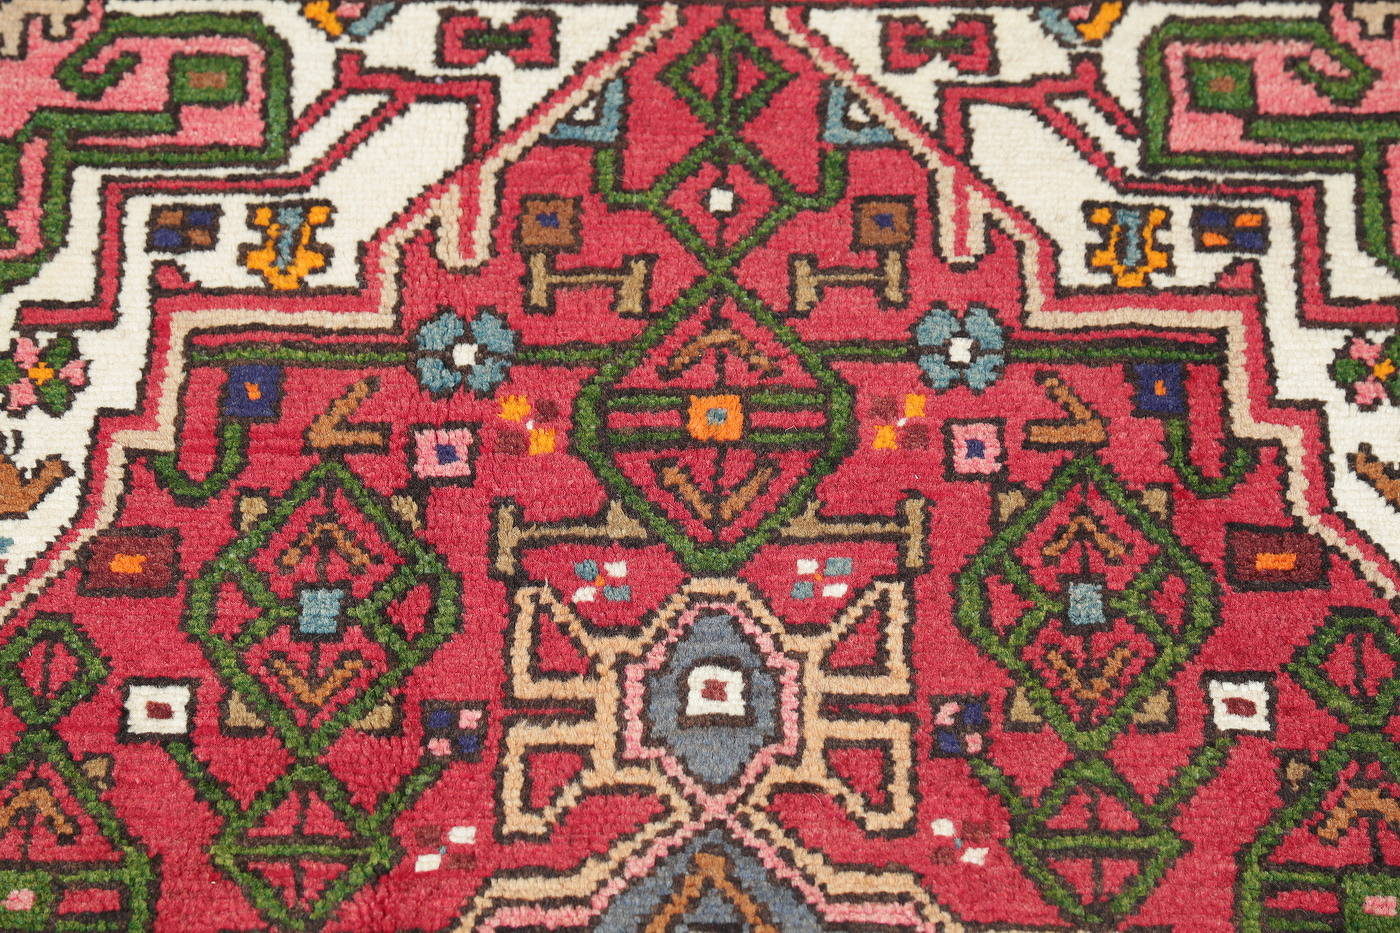 Hand-Knotted Red Geometric Hamedan Persian Area Rug Wool 4x6